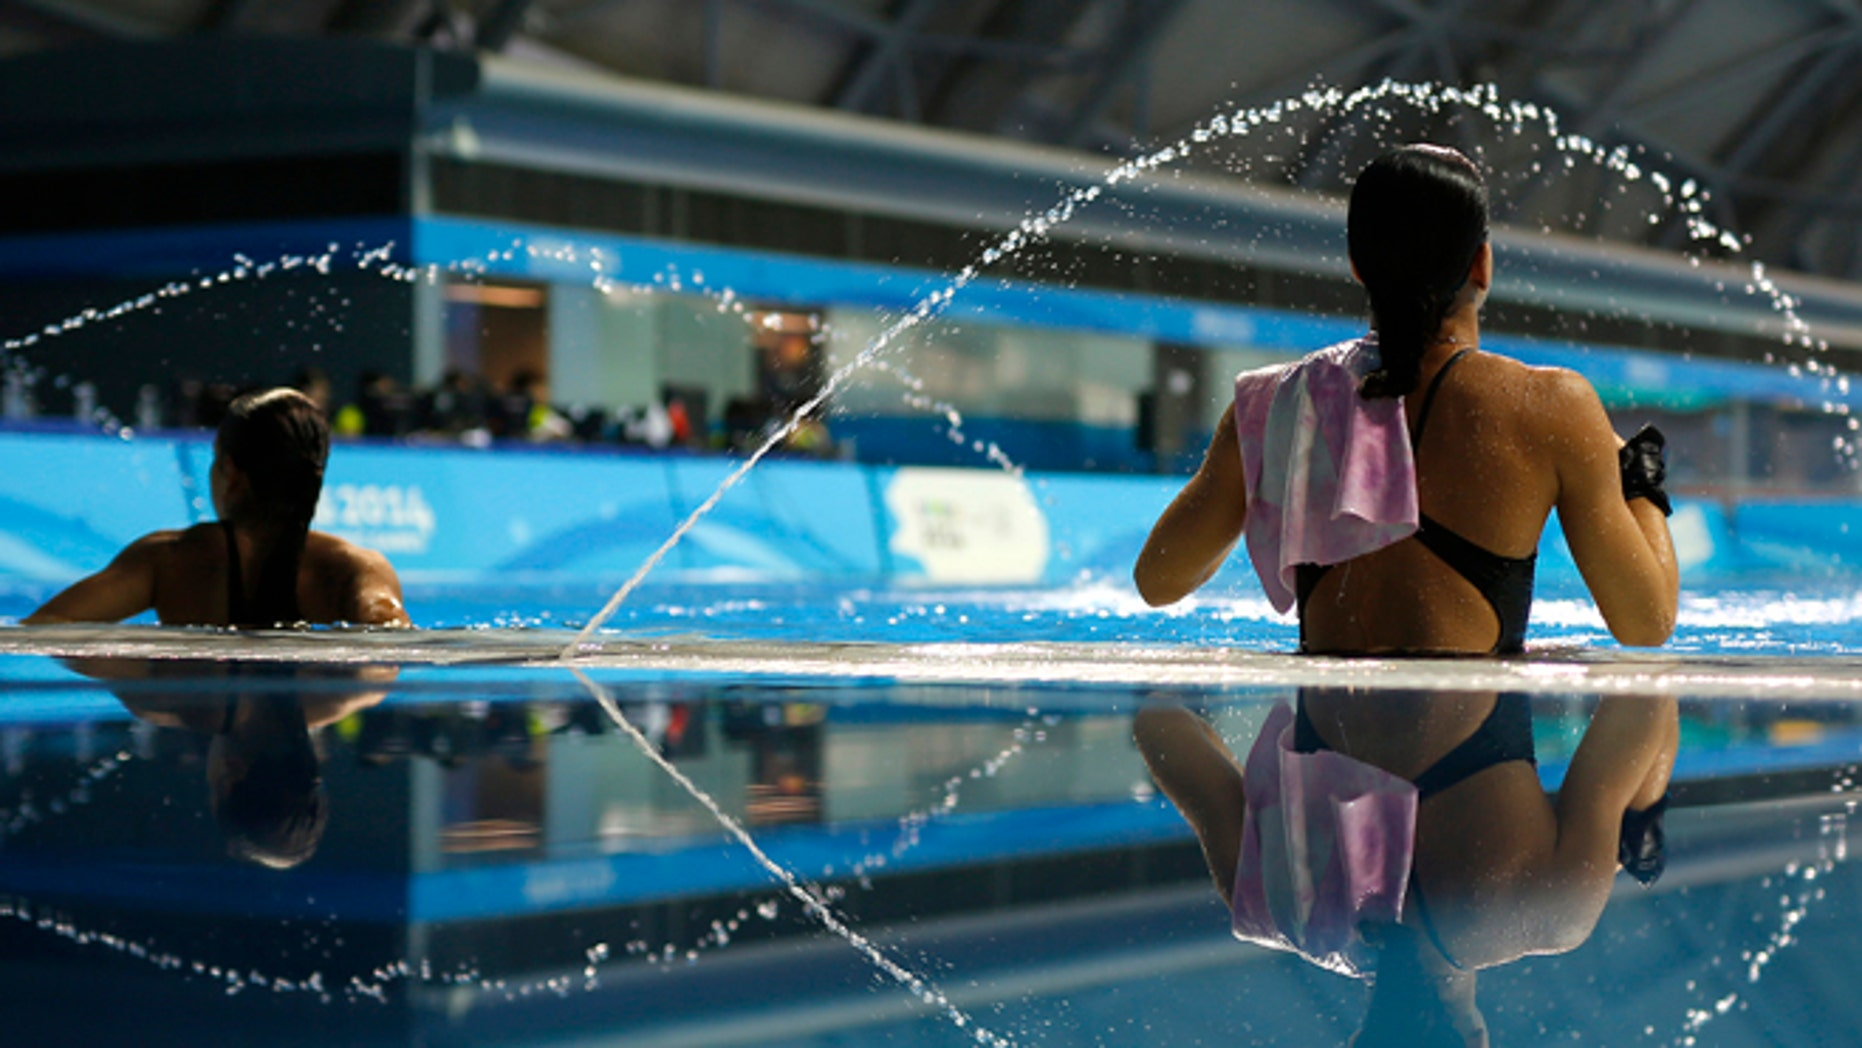 Aug. 25, 2014: Athletes participate in a training session at the 2014 Nanjing Youth Olympic Games in Nanjing, Jiangsu province.